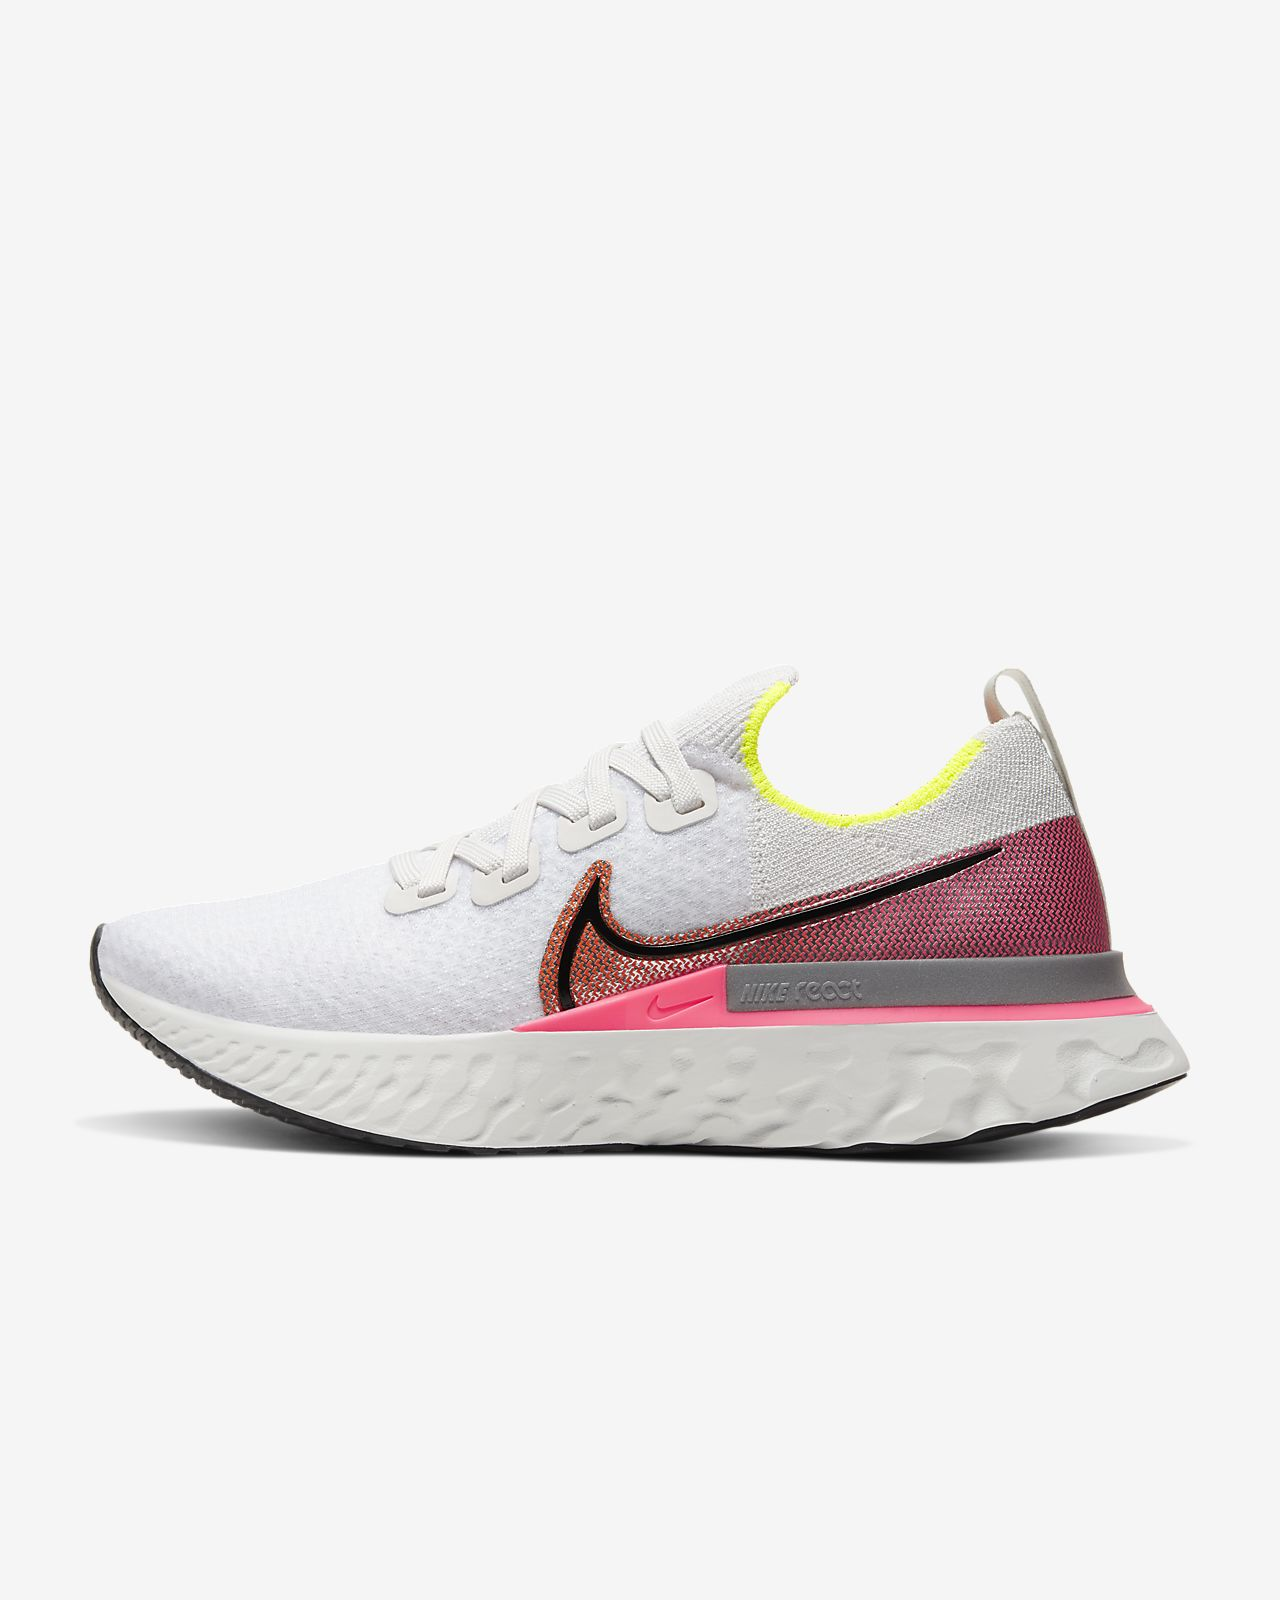 Nike React Infinity Run Flyknit Women's Running Shoe